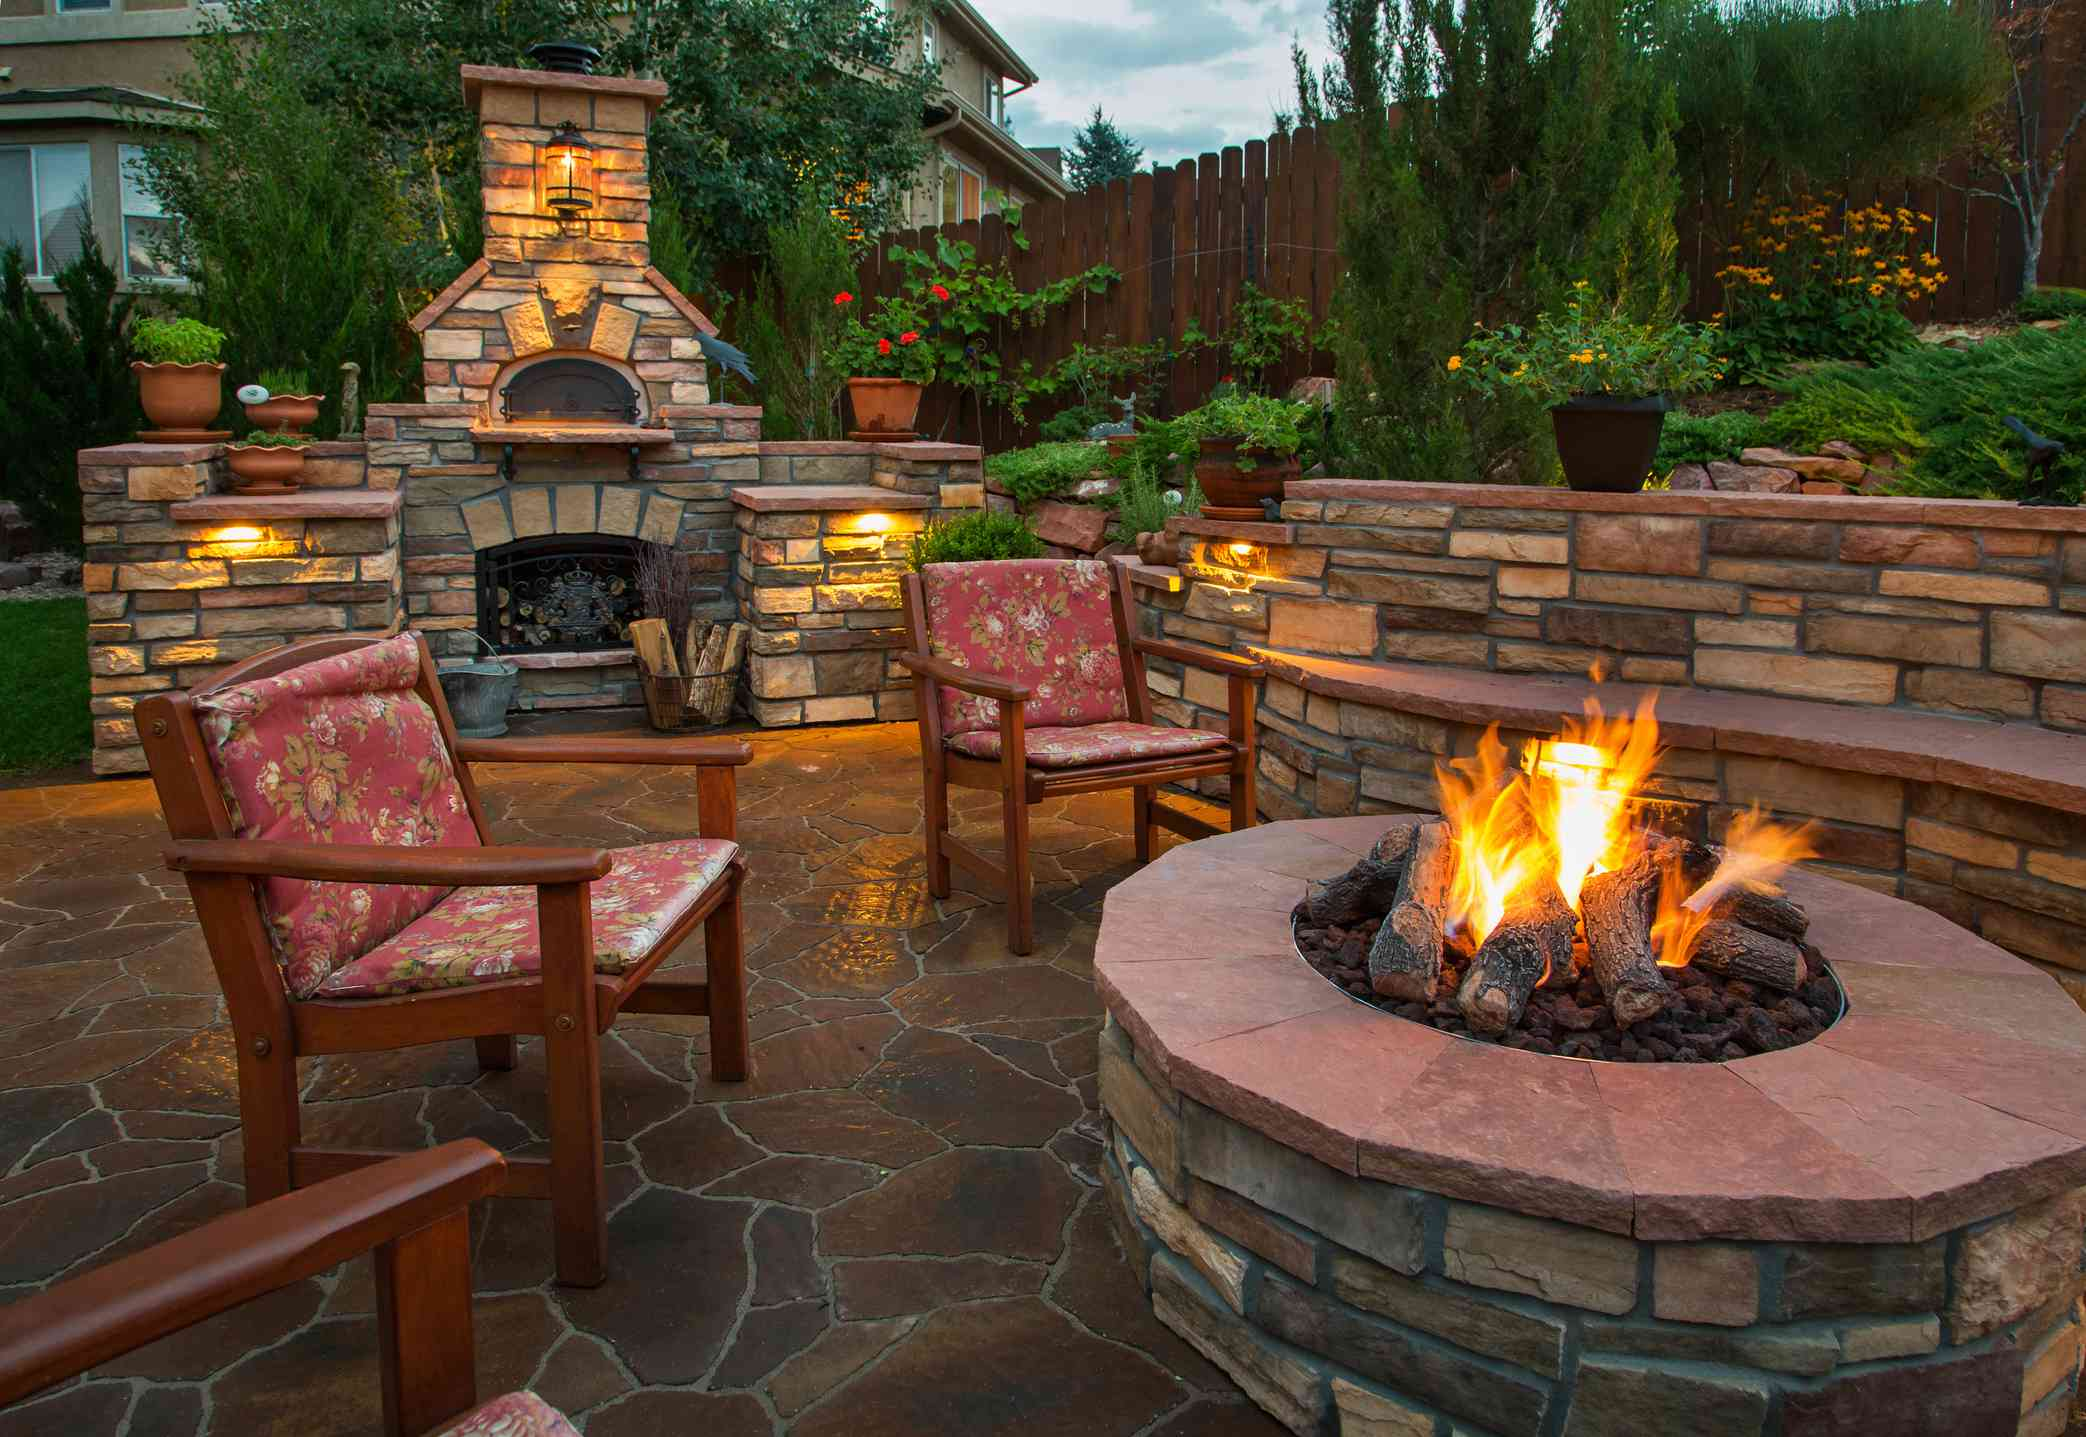 Stone built fire pit and pizza oven with matching retaining wall